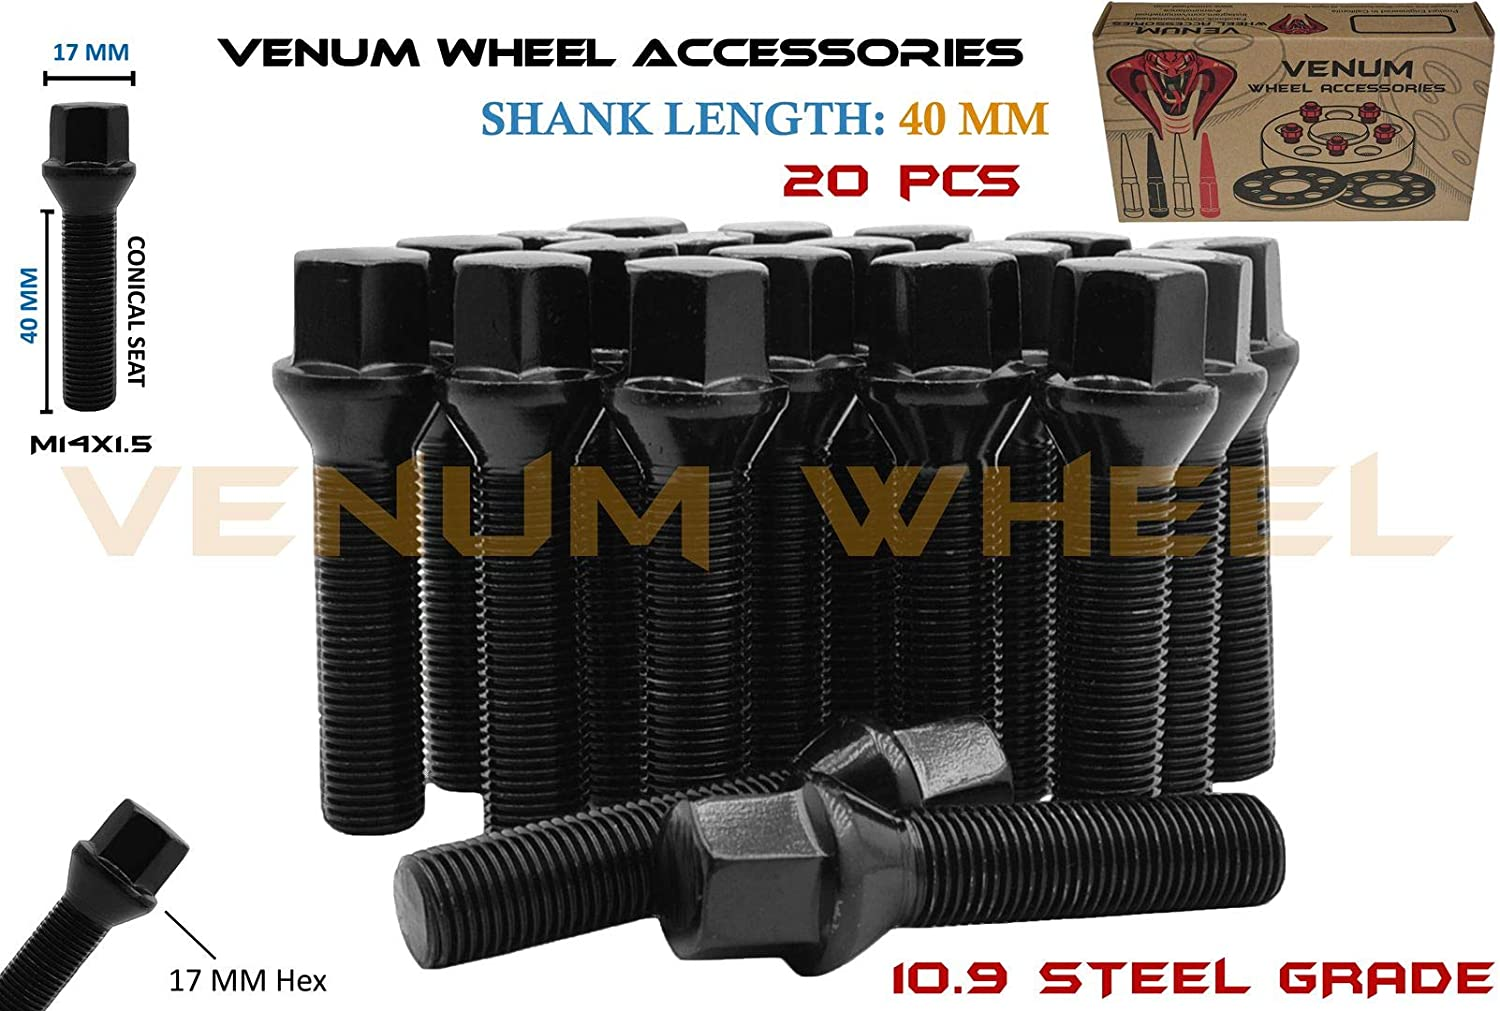 Complete Set of 20 Pc Conical Seat Lug Bolts 55 mm Extended Shank Length Black Powder Coated Finish M14x1.5 Works With Volkswagen Audi BMW Mercedes Benz Porsche Vehicle W// Aftermarket Wheels